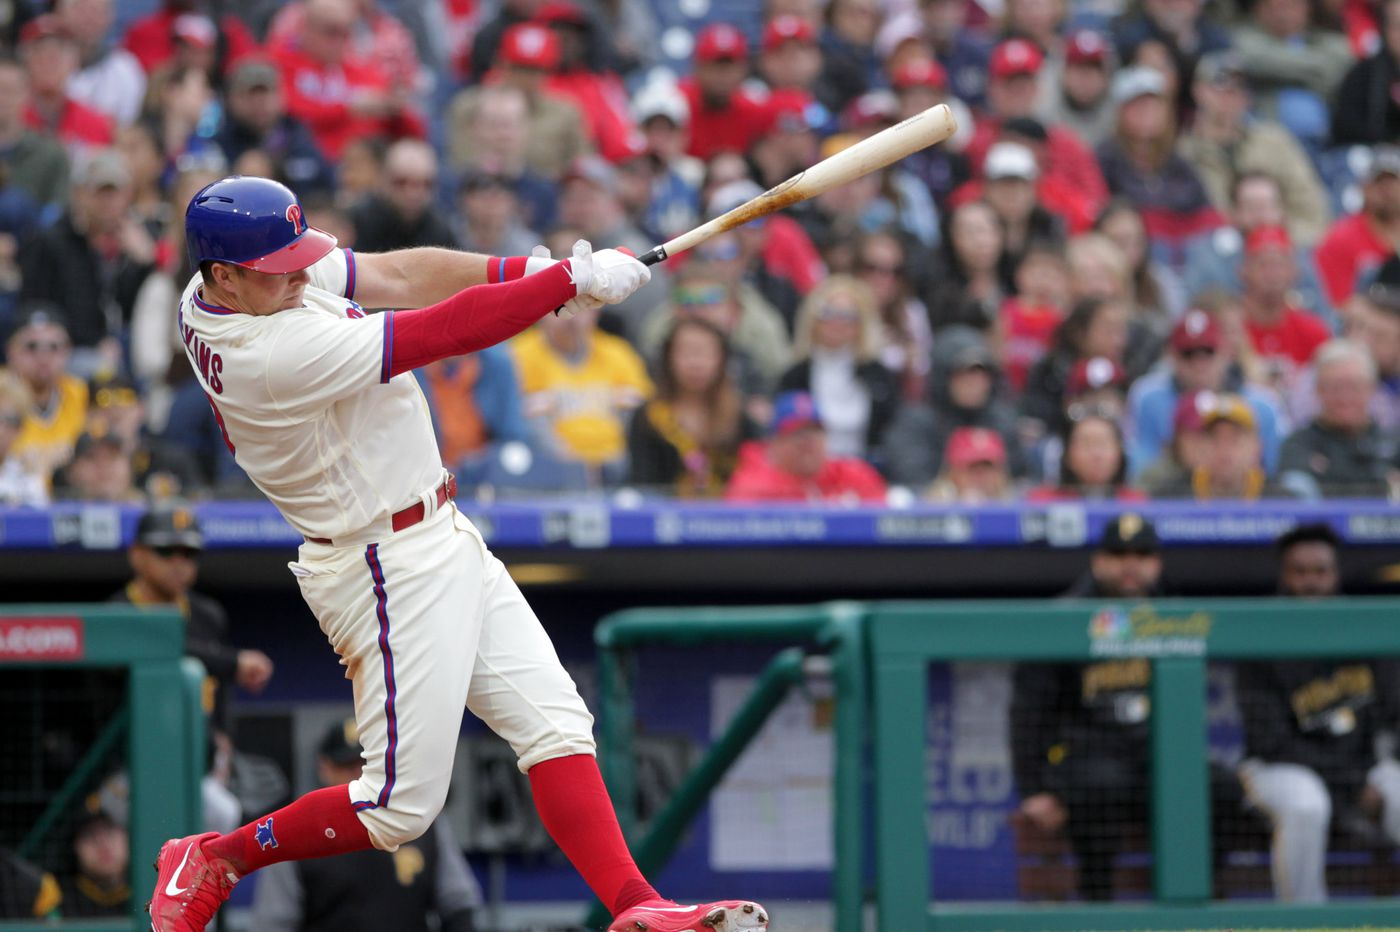 Phillies' Rhys Hoskins has set an impressive home-run pace in his first two seasons